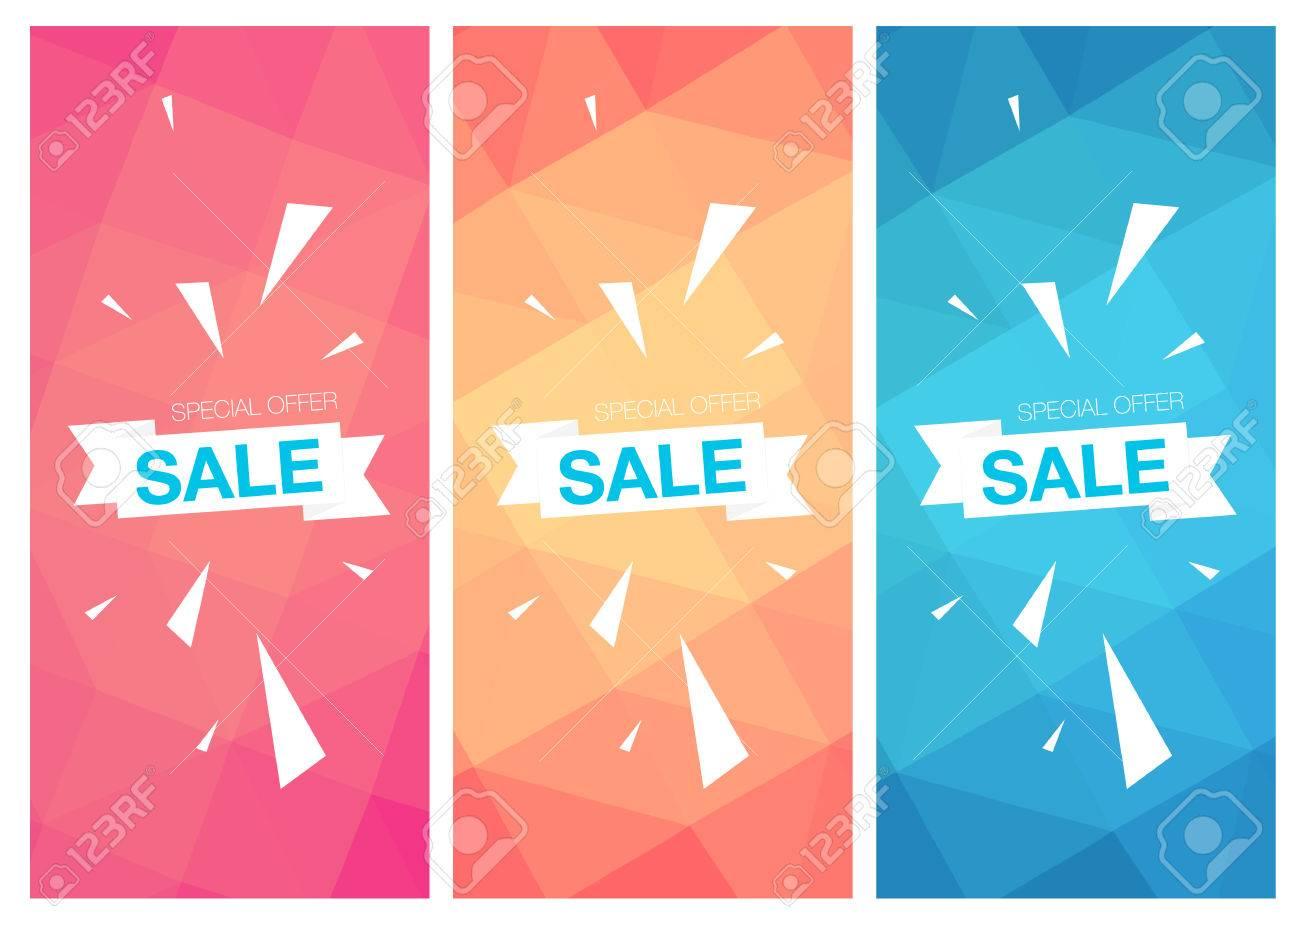 super sale special offer web banner templates on colored background